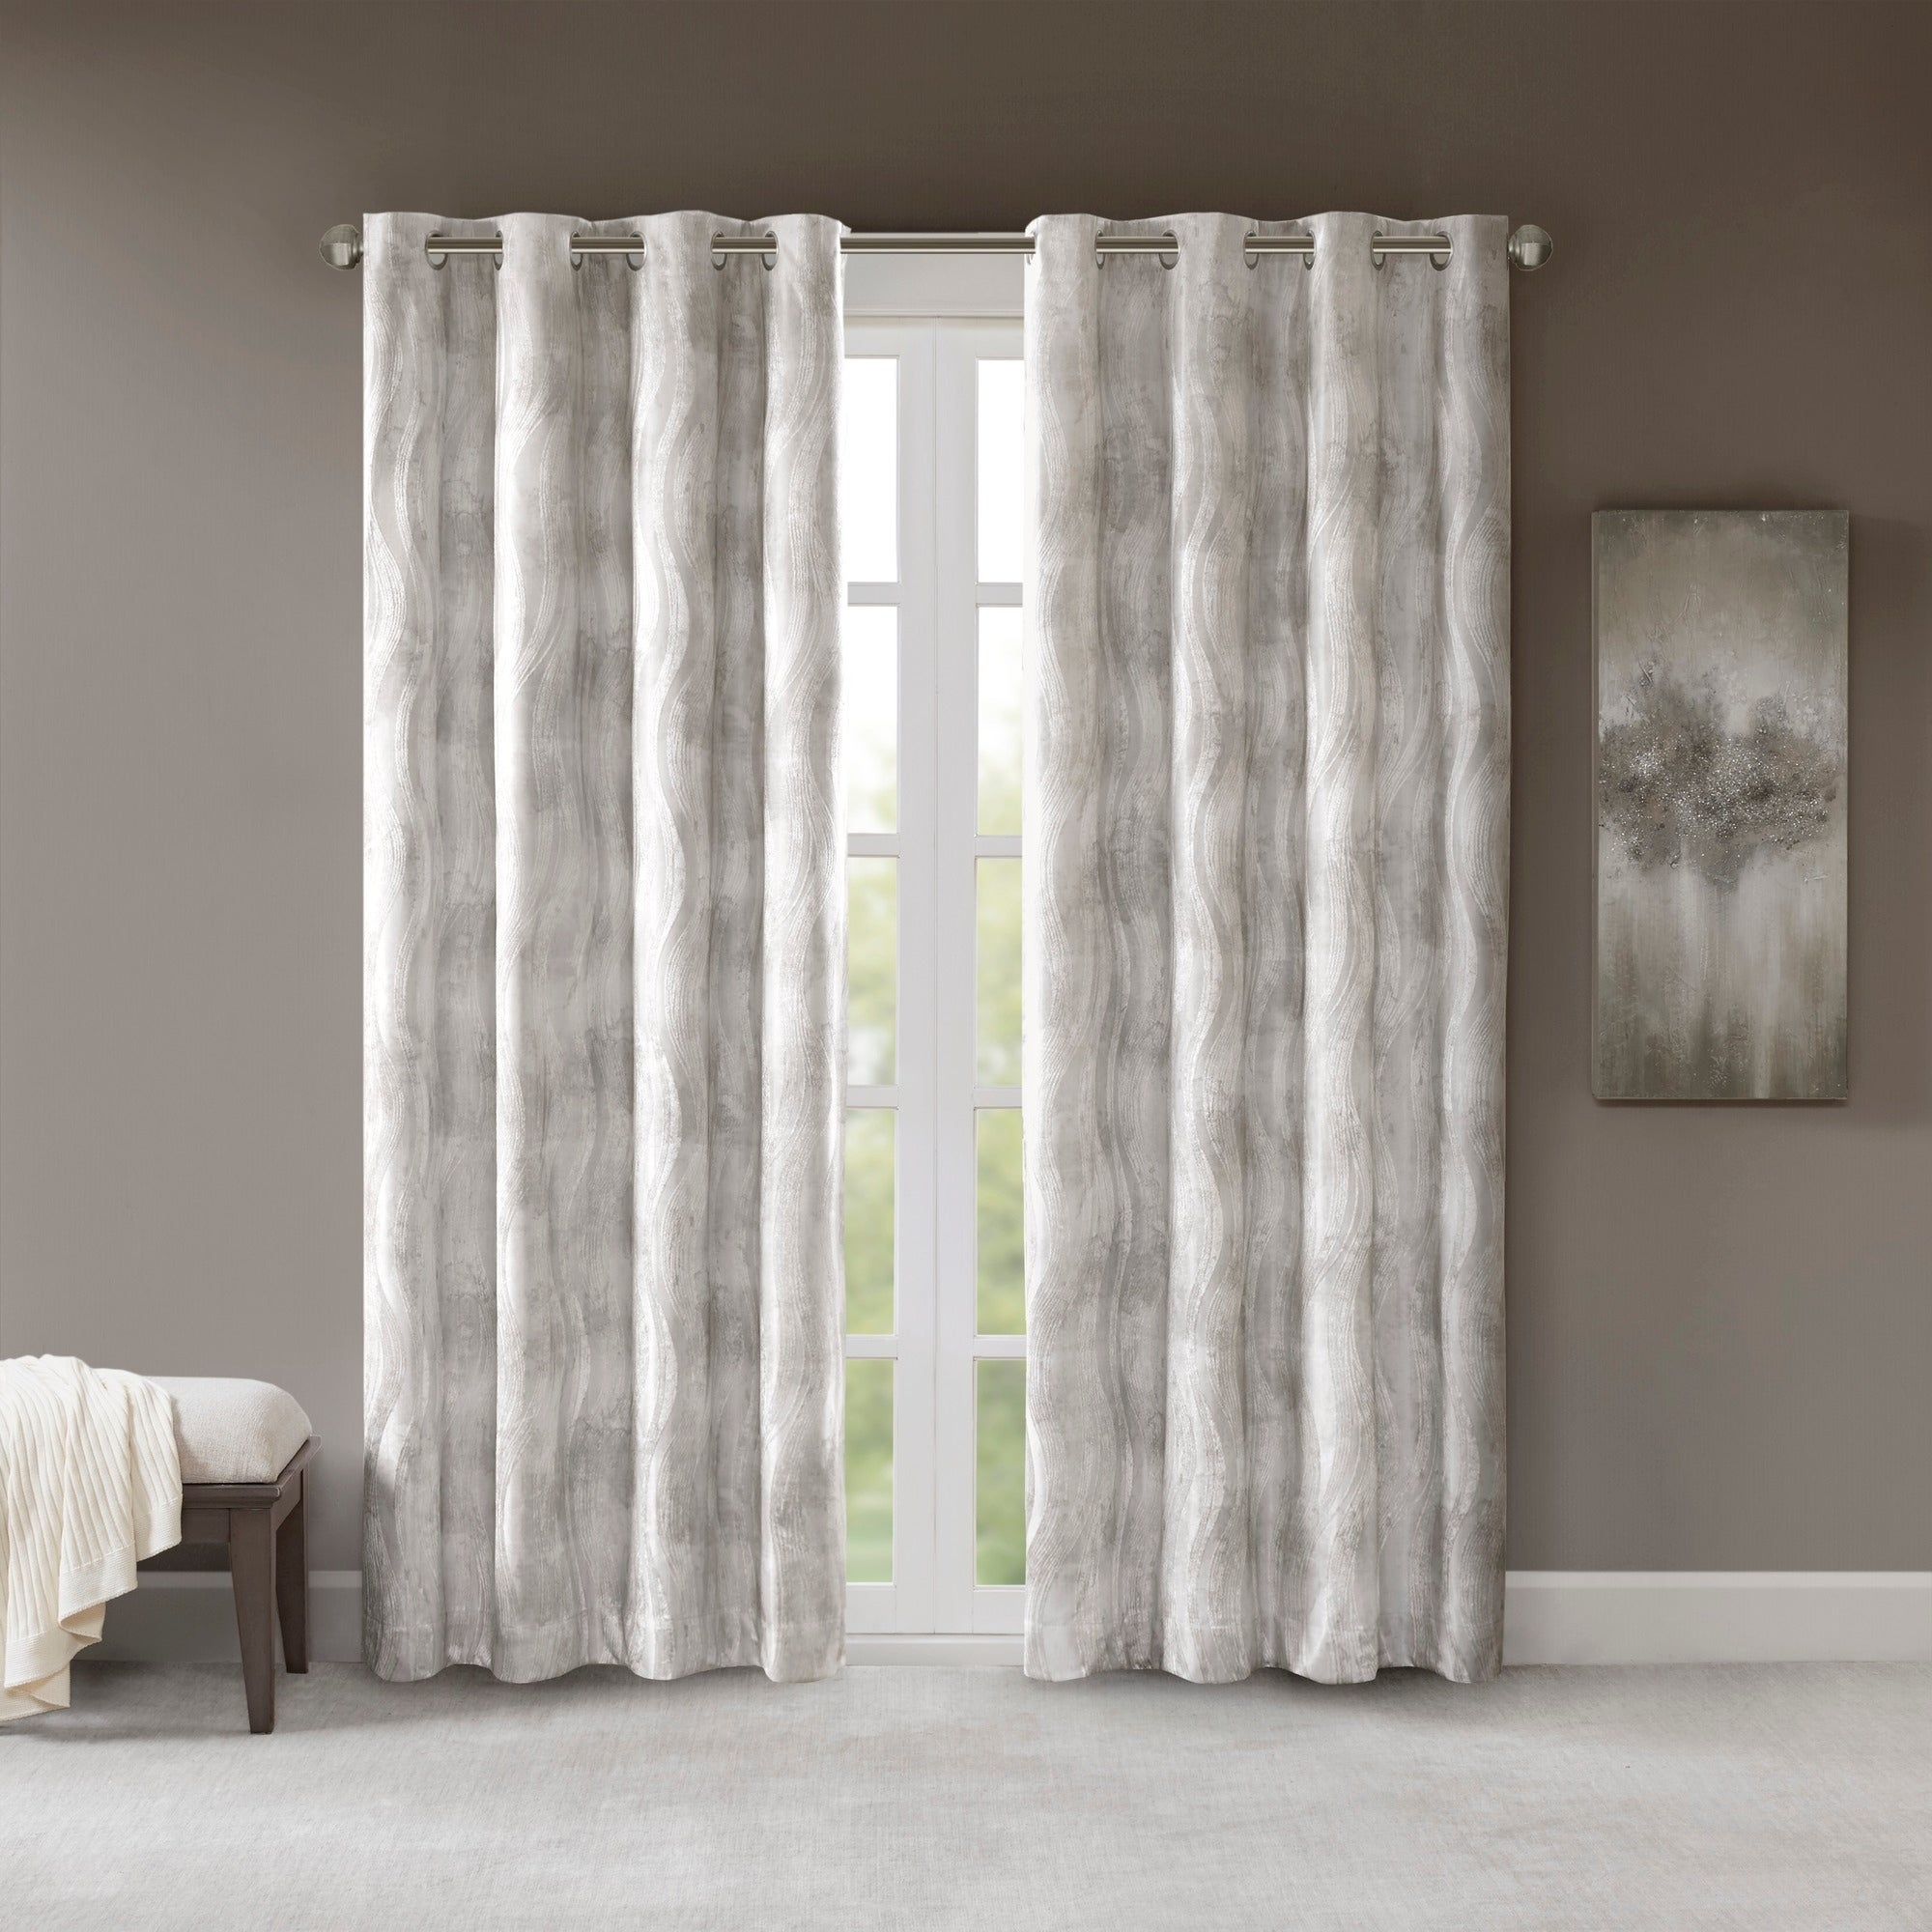 Sunsmart Alastair Ivory Printed Jacquard Total Blackout Single Curtain Panel With Regard To Sunsmart Abel Ogee Knitted Jacquard Total Blackout Curtain Panels (View 18 of 30)